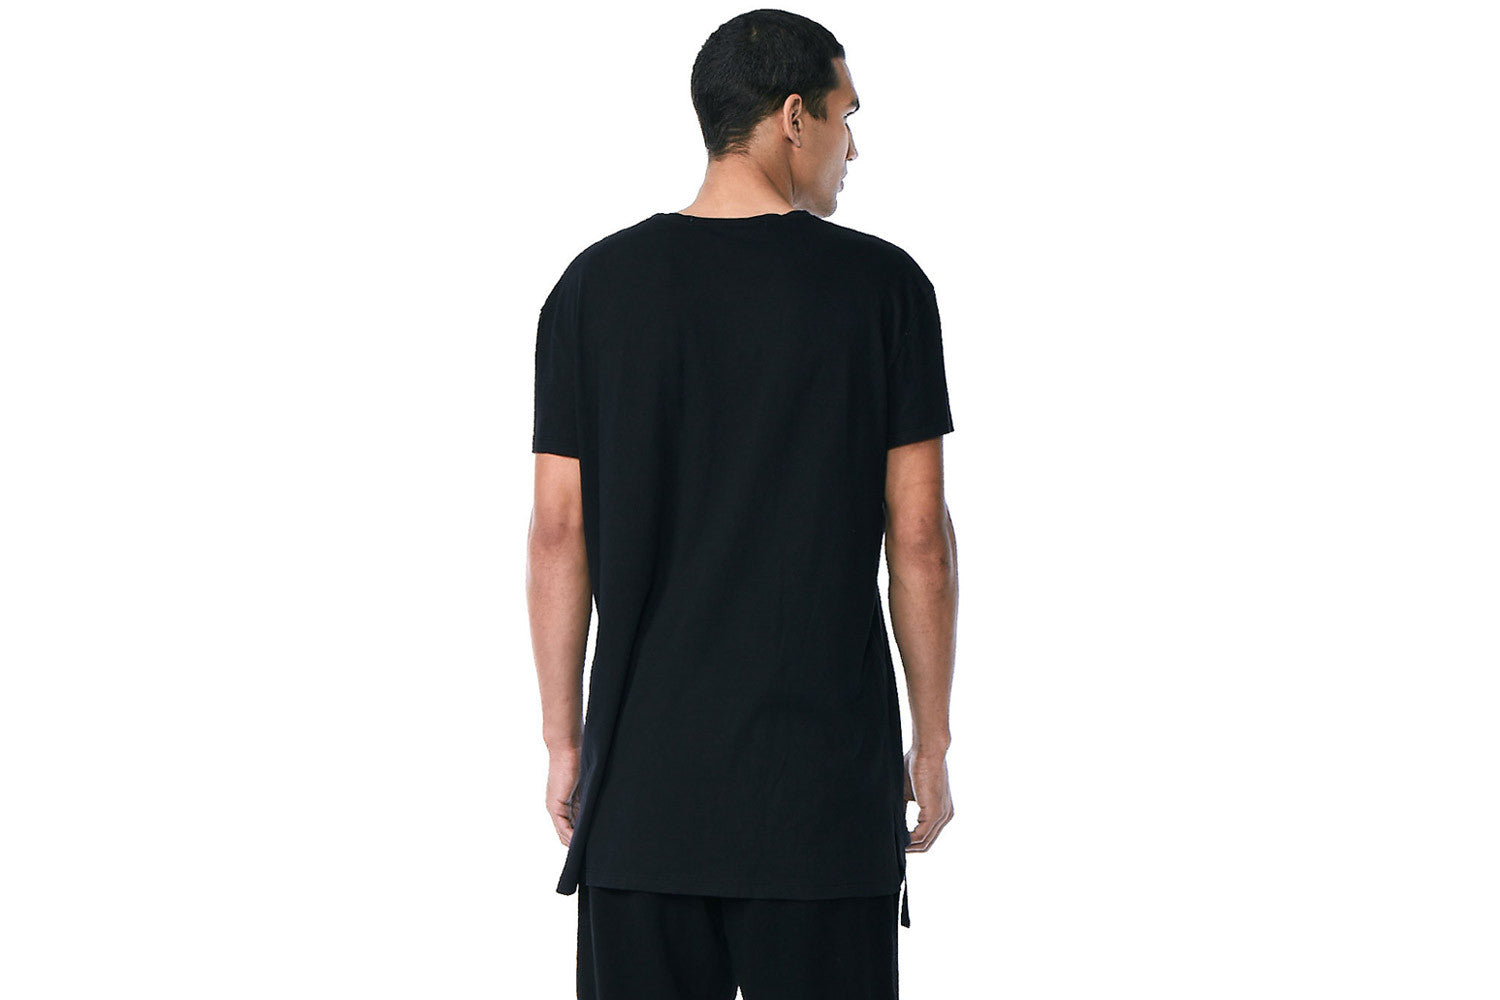 Lotus - Crew Neck Side Slit Tee  (Black)